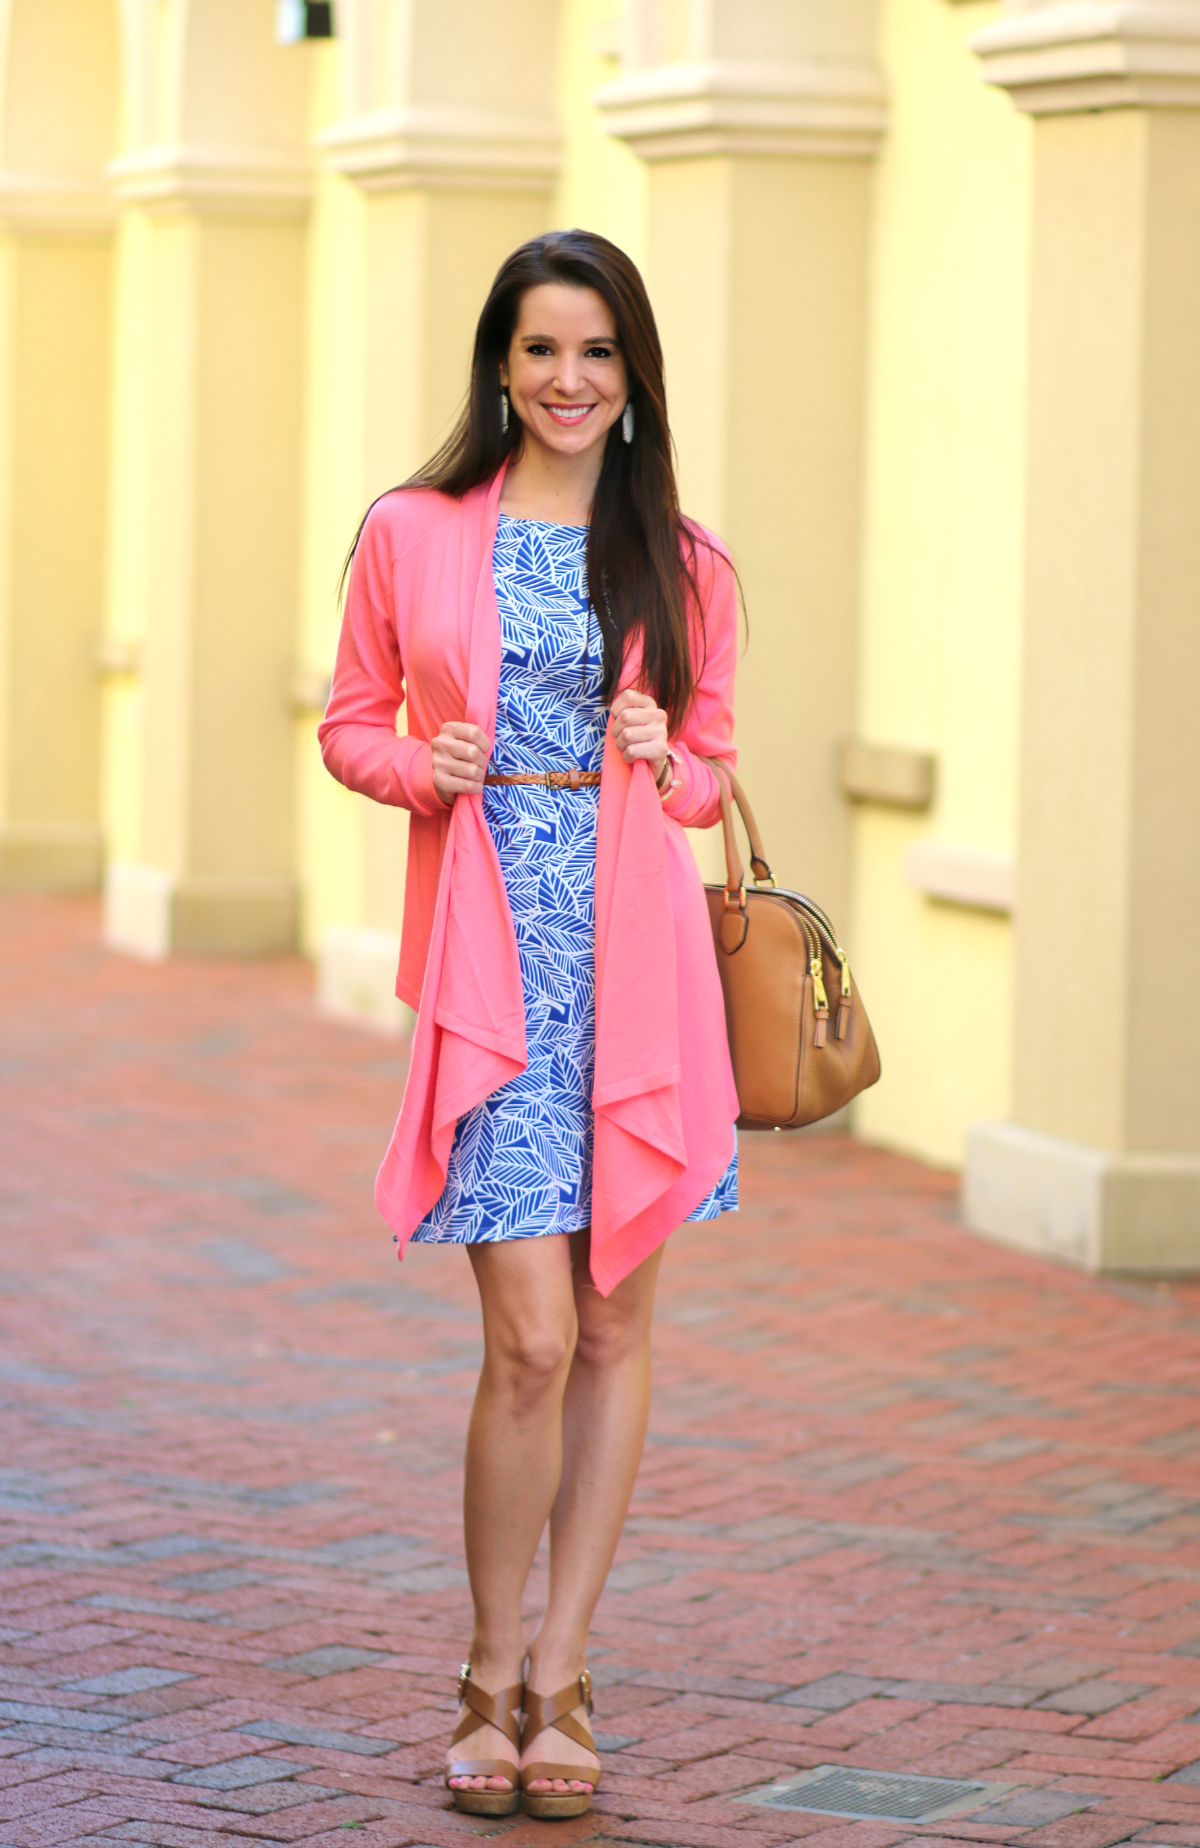 Floridian Fall Style: Coral Waterfall Cardigan